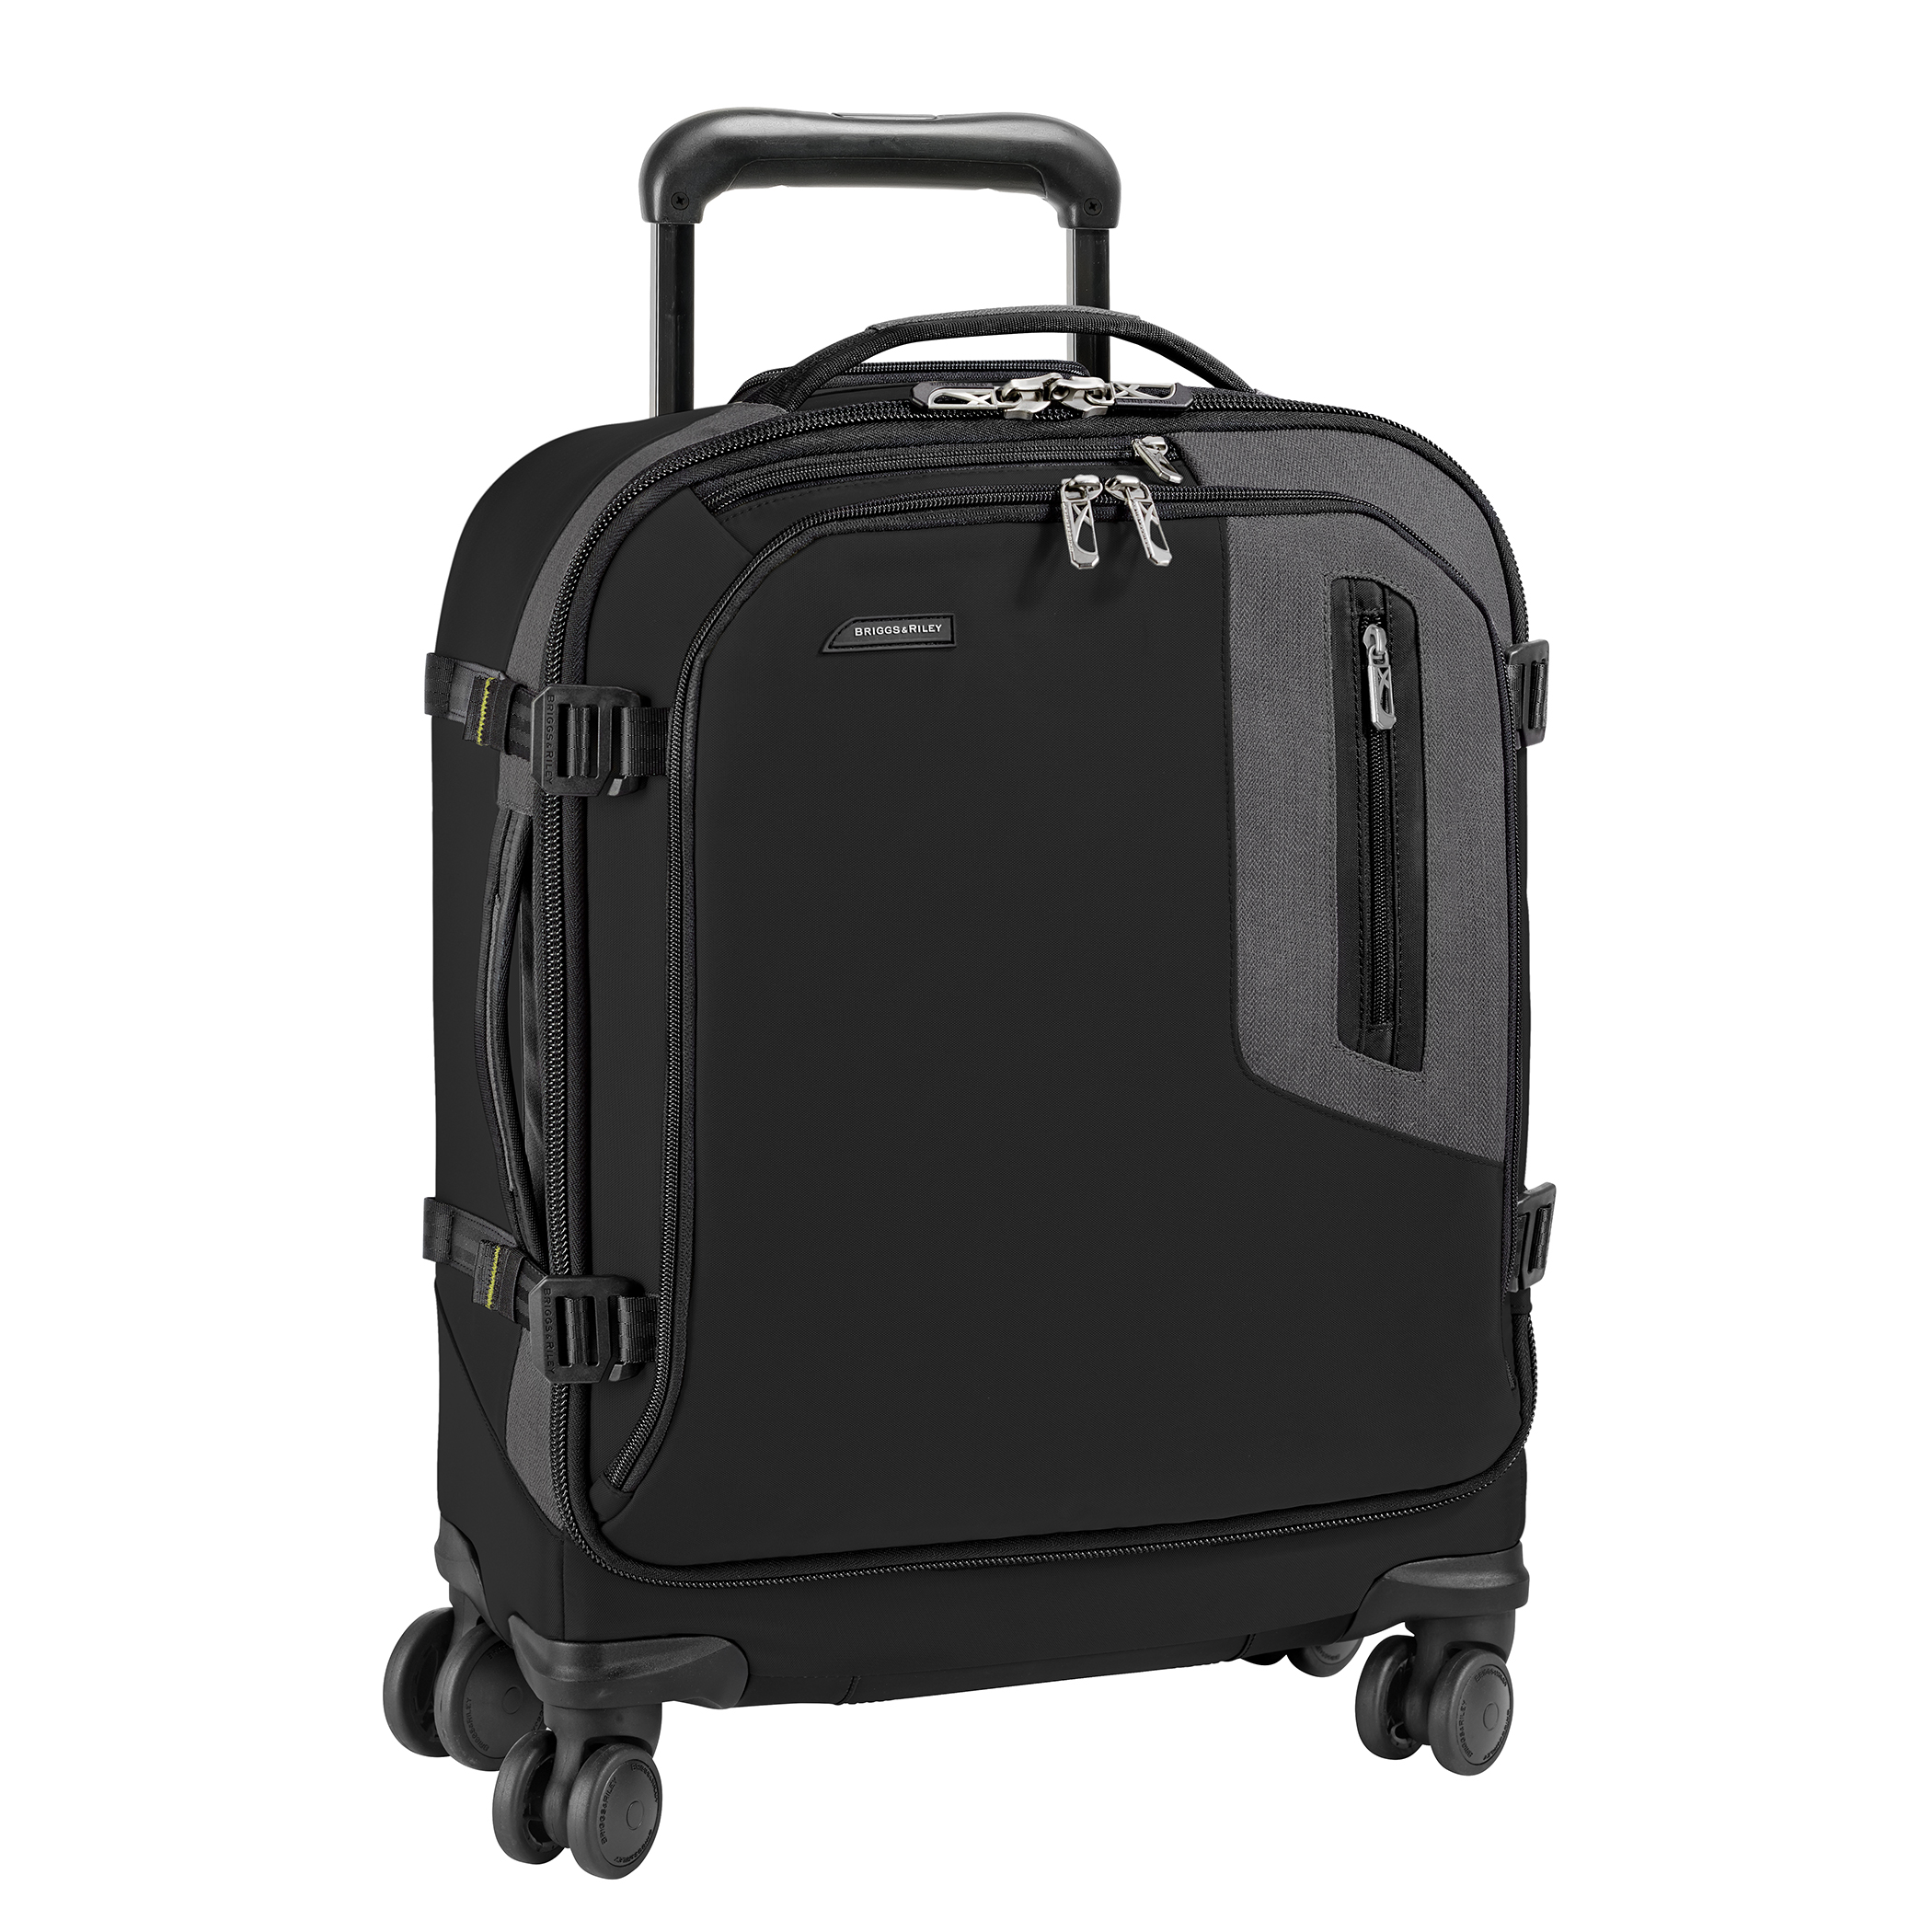 Briggs & Riley BRX-Explore BU221SPW-4 Wide-Body Carry-On Spinner Luggage Black 21″ LIFETIME WARRANTY